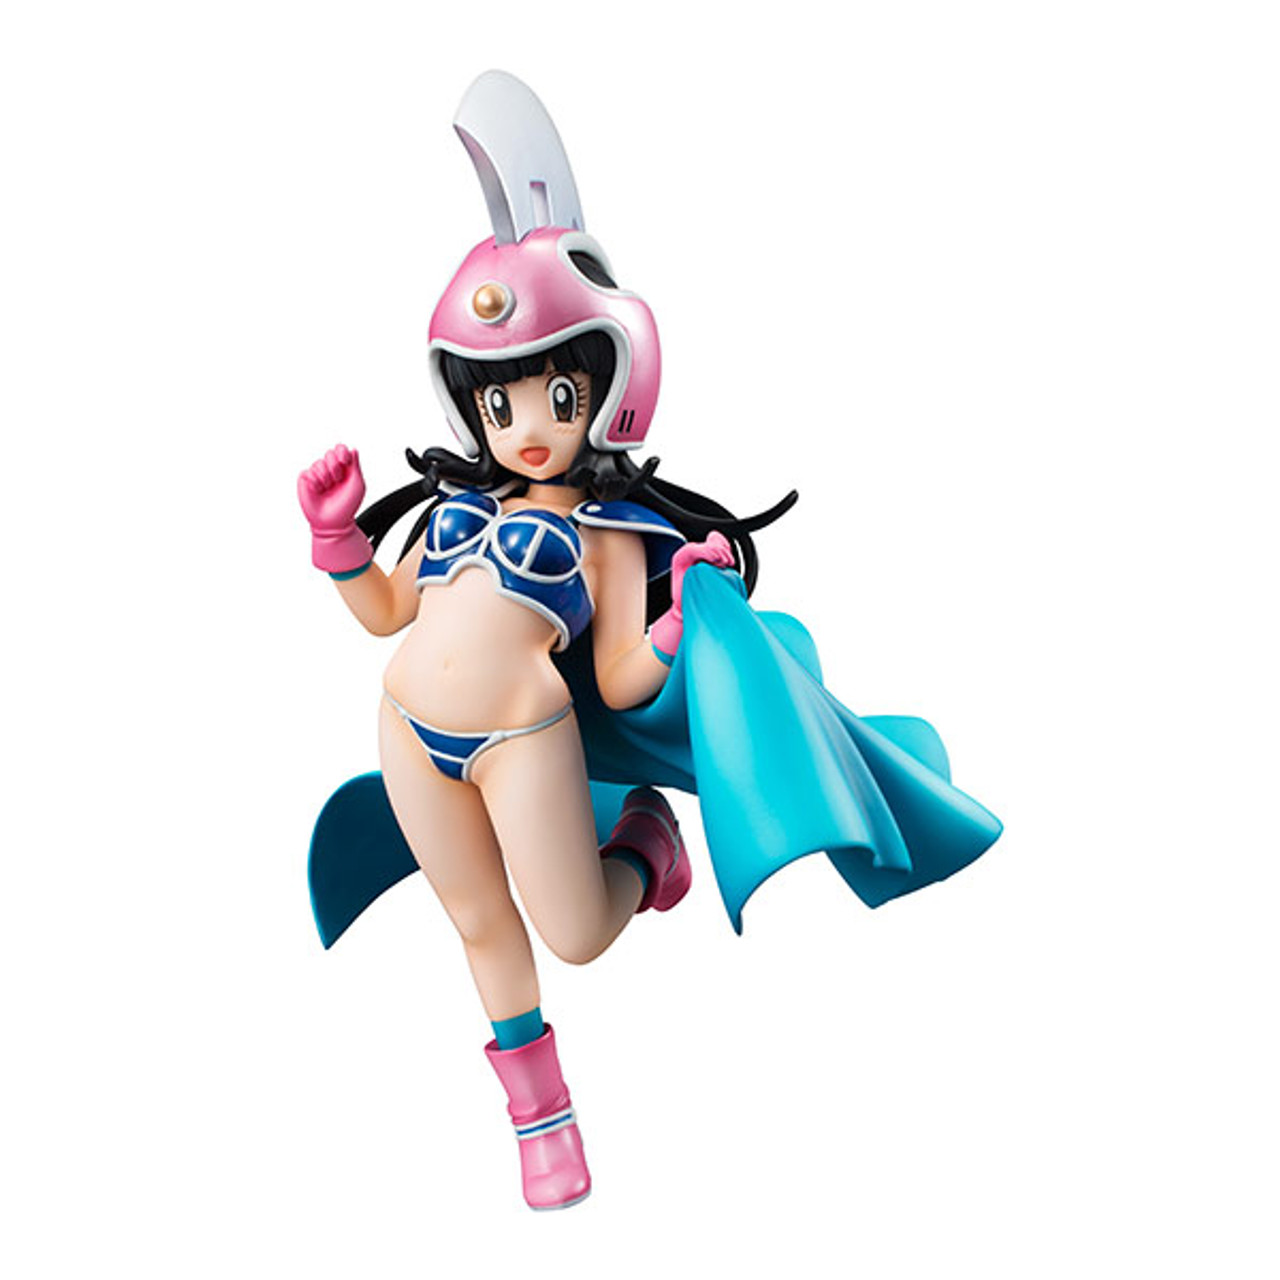 MegaHouse Dragon Ball Gals Lunchi Black Hair Ver Lunch Girls Figure New in Box